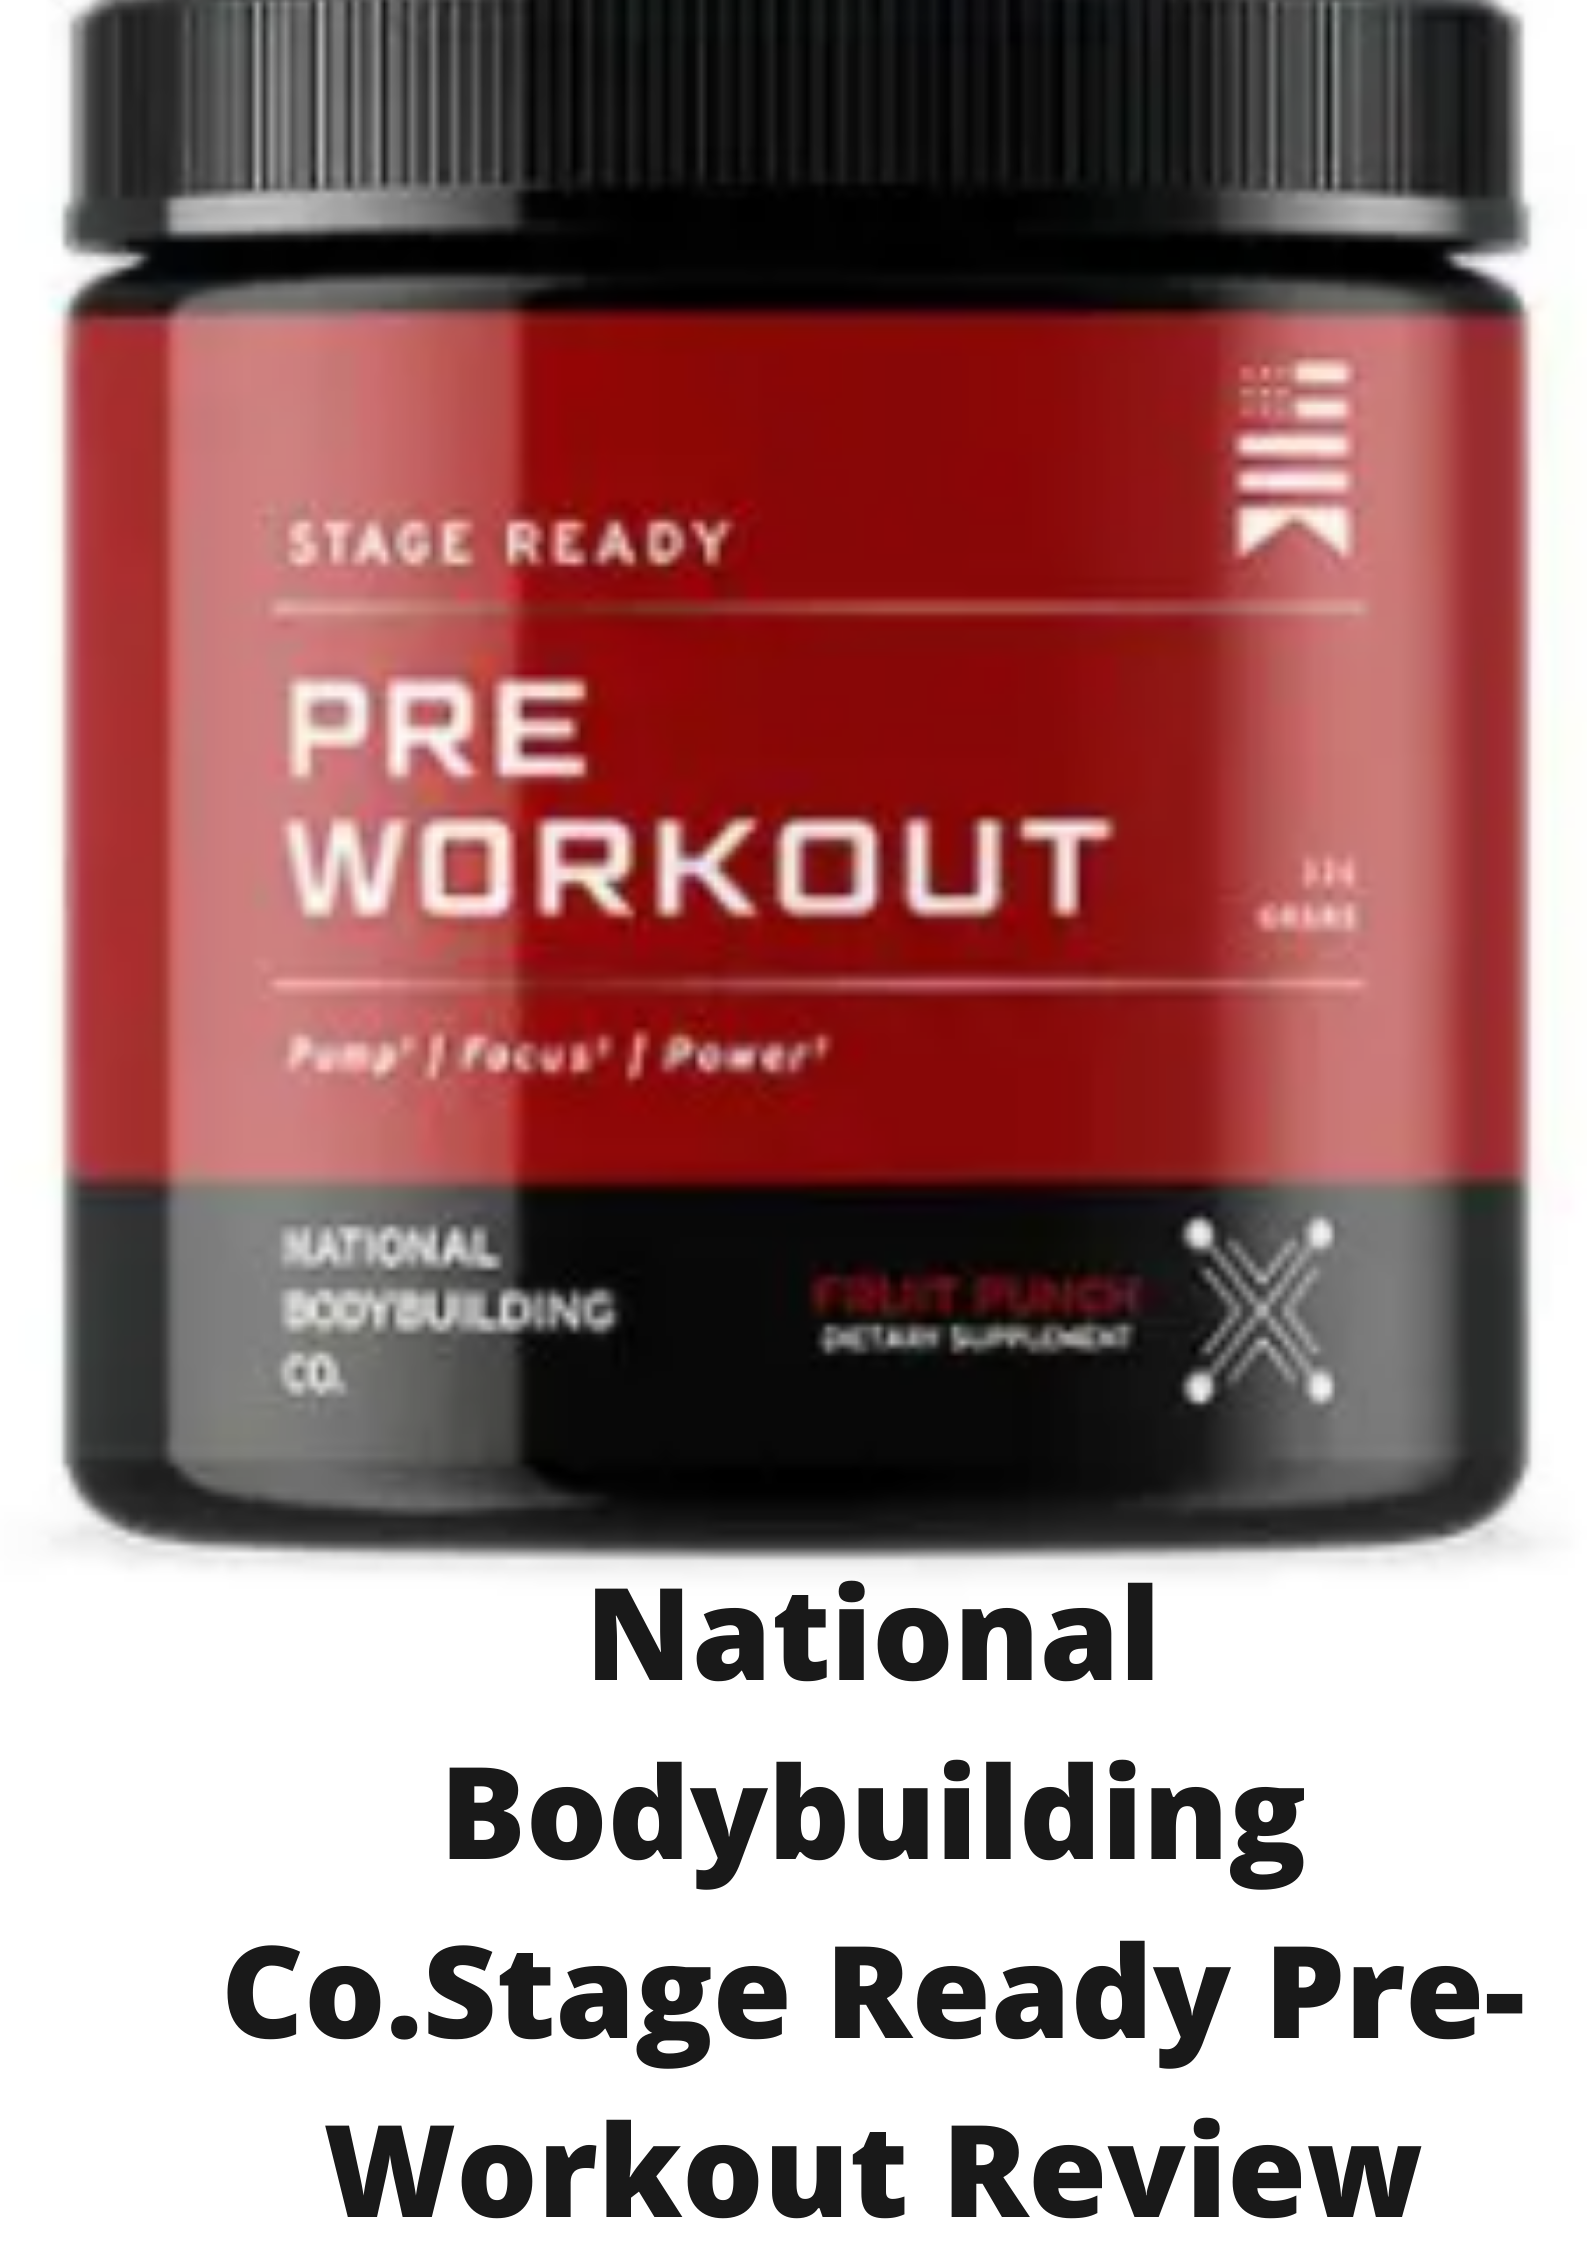 National Bodybuilding Co.Stage Ready Pre-Workout Review